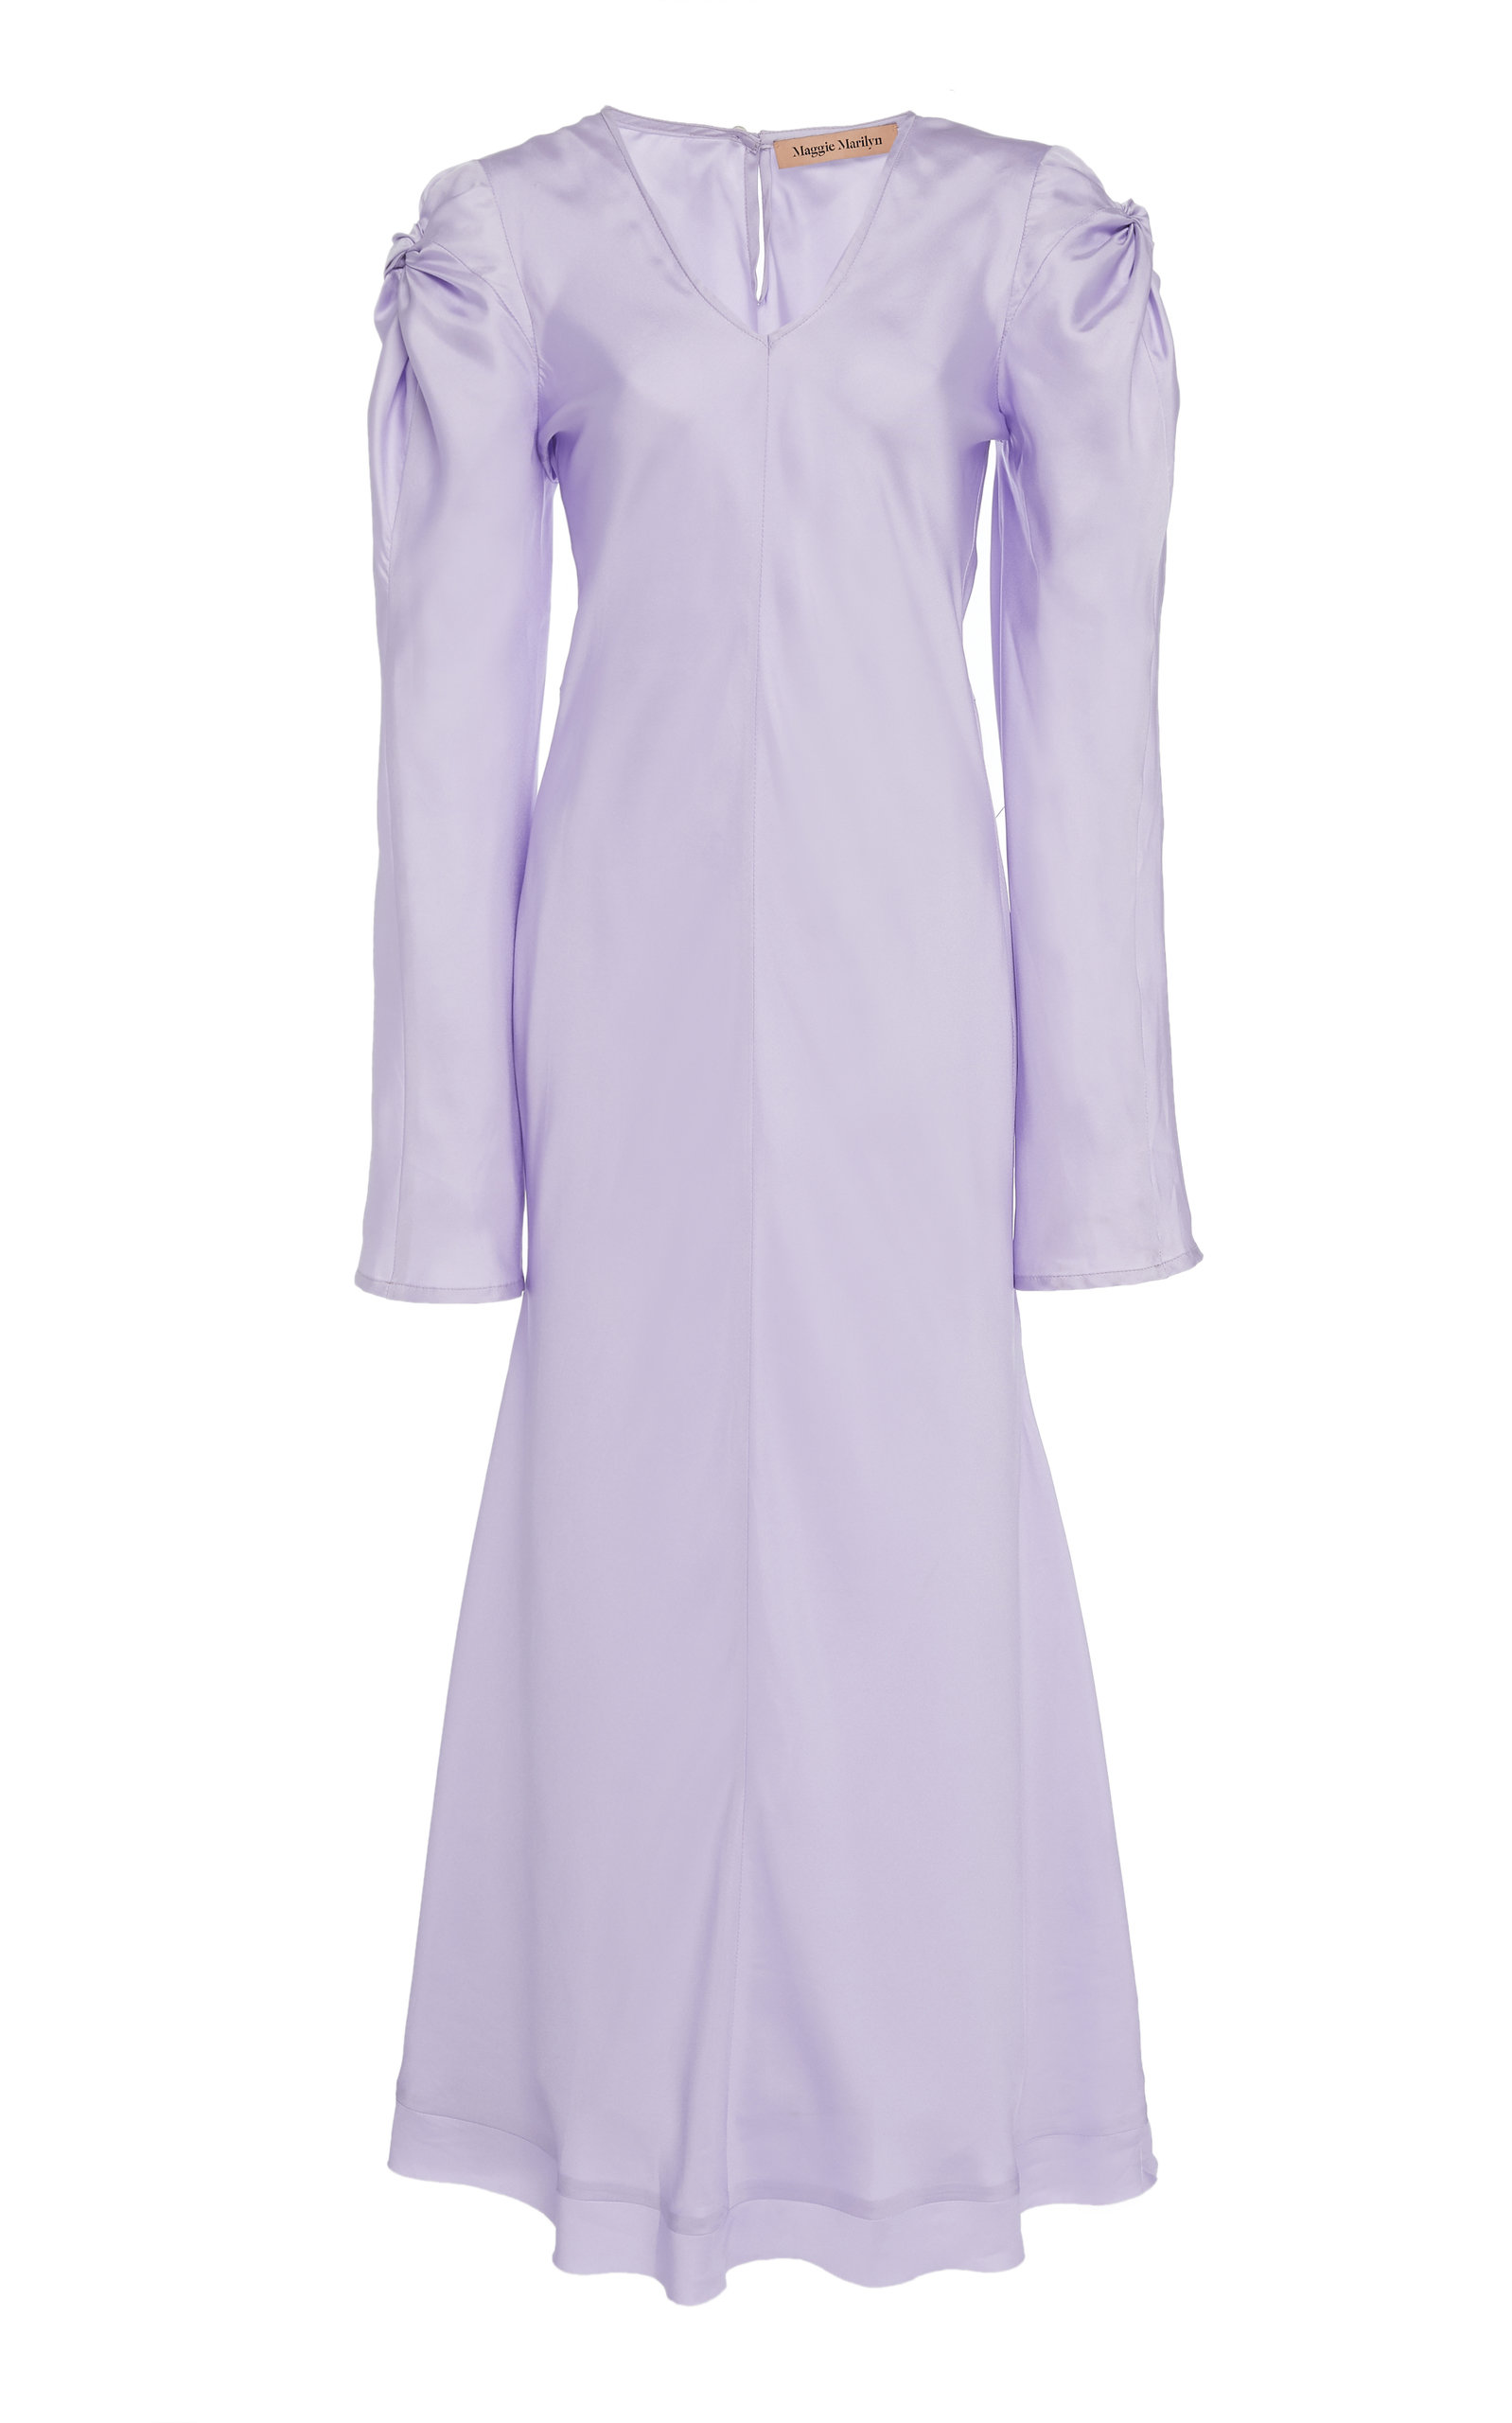 Maggie Marilyn   Maggie Marilyn Knot Today Silk Midi Dress   Clouty